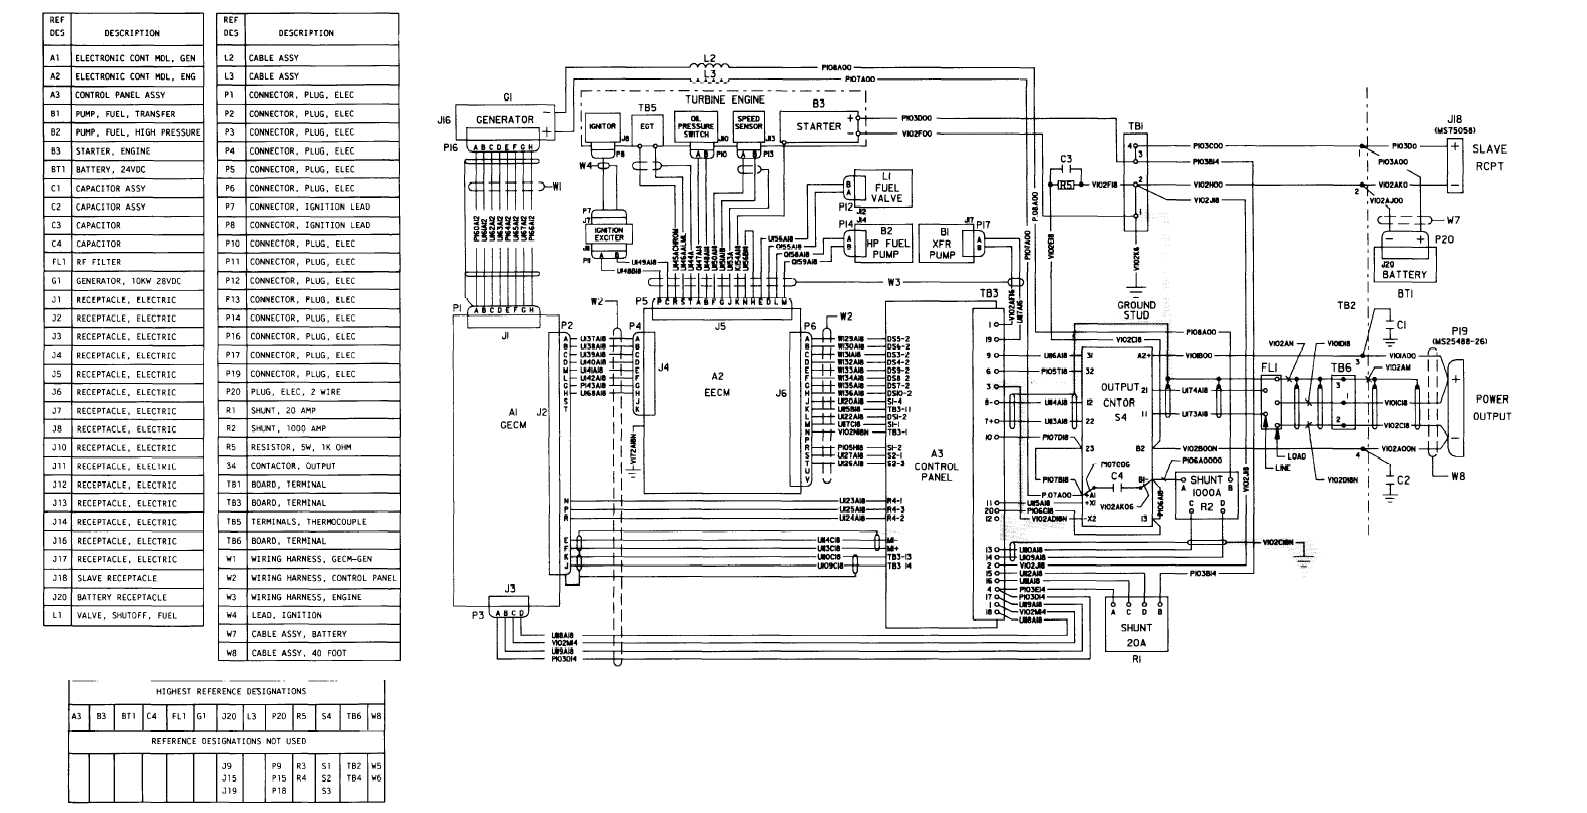 TM 5 6115 612 12_300_1 fo 3 generator set wiring diagram wiring diagram ford at panicattacktreatment.co